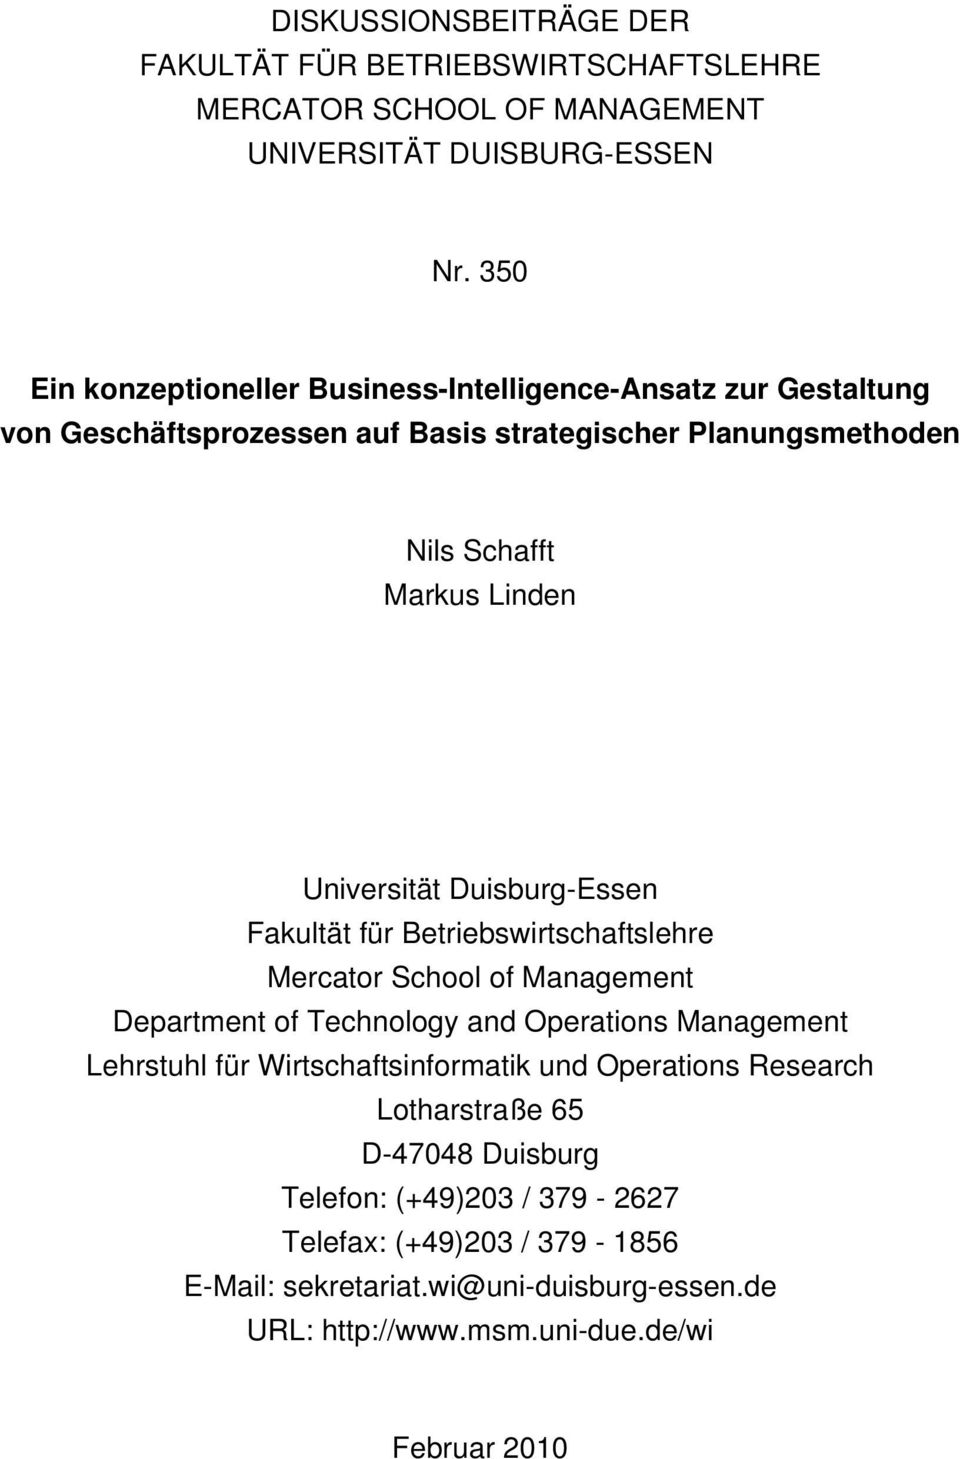 Universität Duisburg-Essen Fakultät für Betriebswirtschaftslehre Mercator School of Management Department of Technology and Operations Management Lehrstuhl für